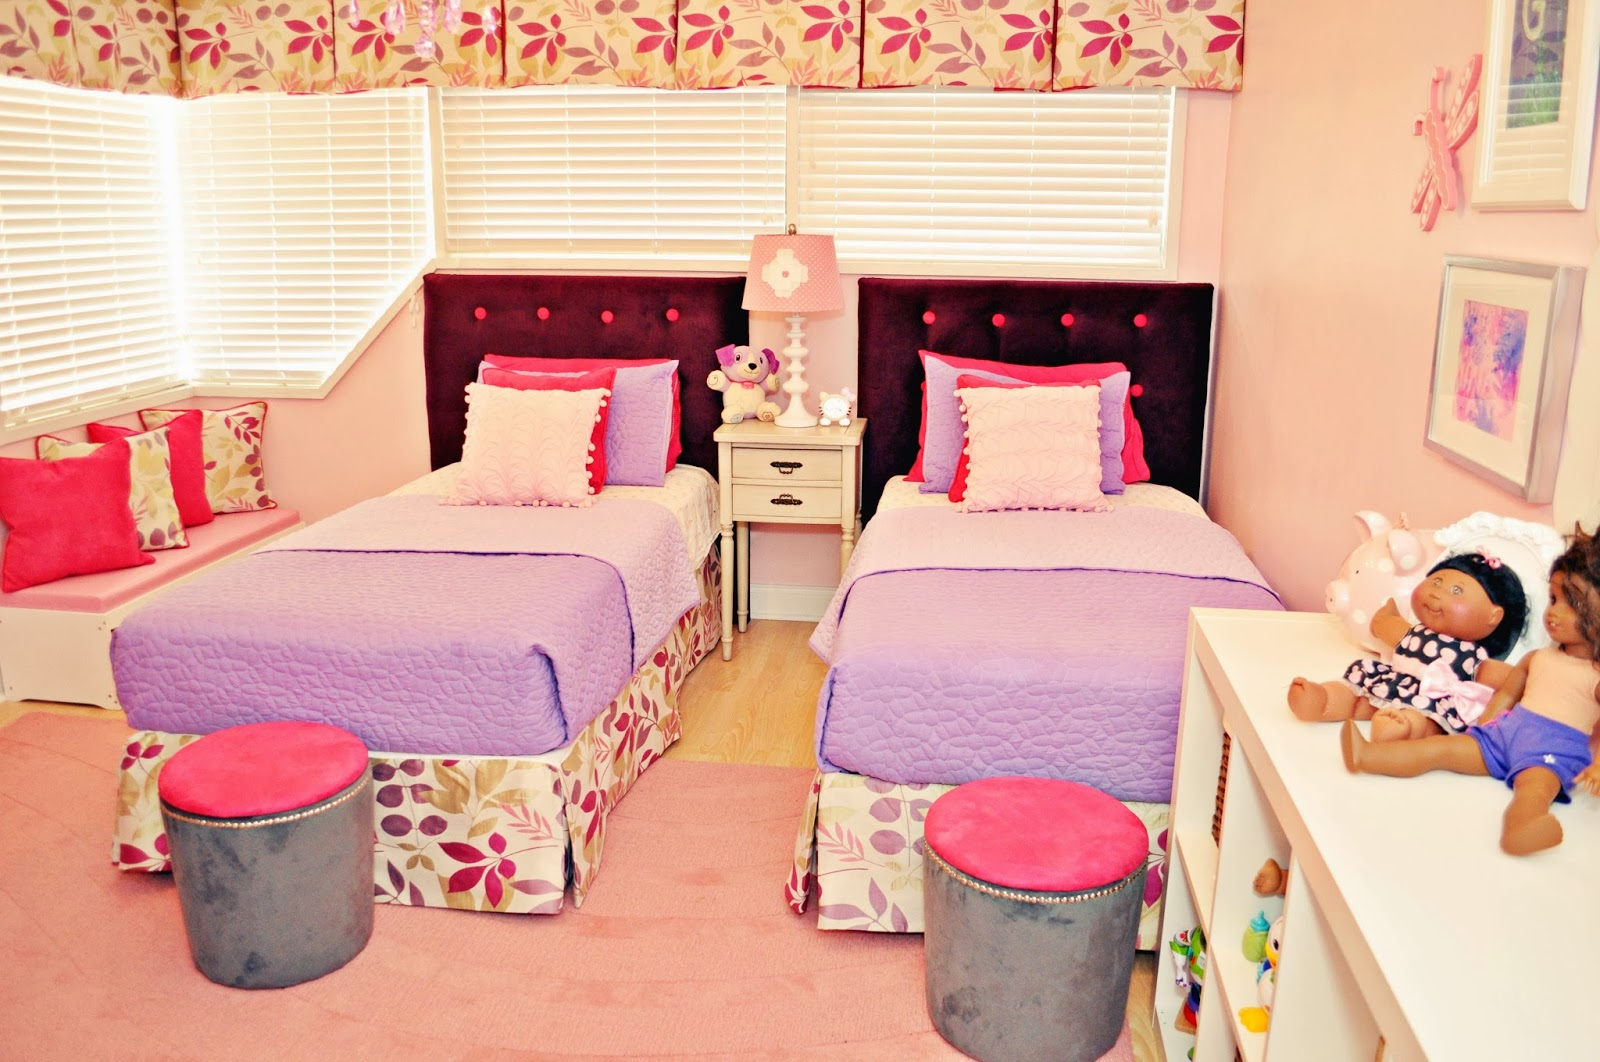 Live Laugh Decorate Pink Meets Purple in Our Kids Room Reveal